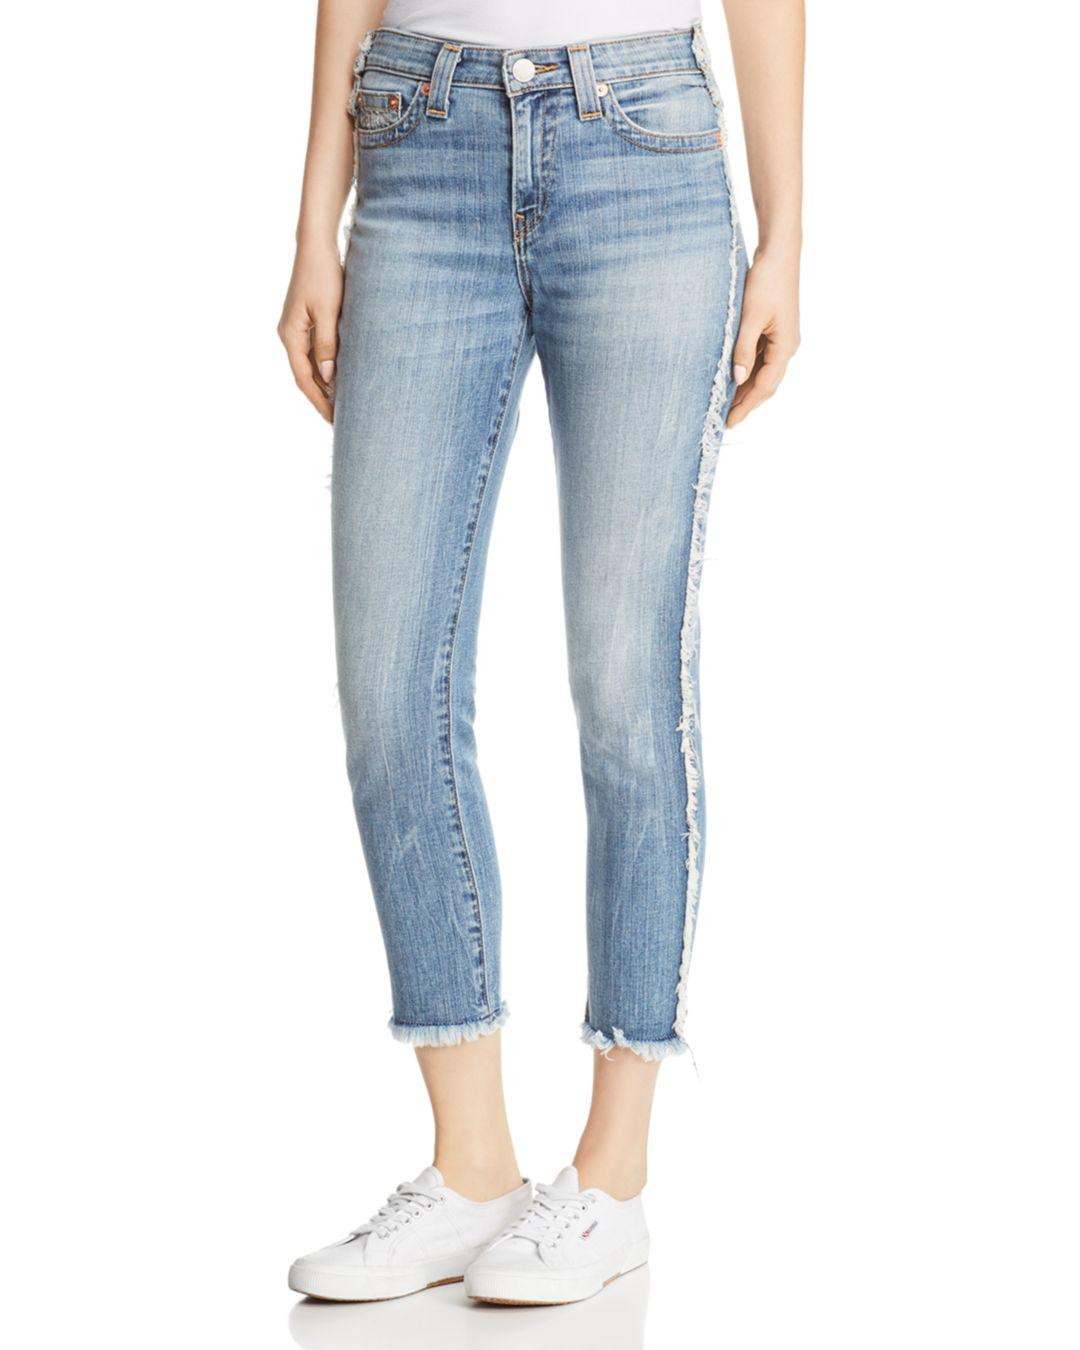 d47918a7d True Religion. Women s Blue Colette High-rise Tapered Skinny Jeans ...